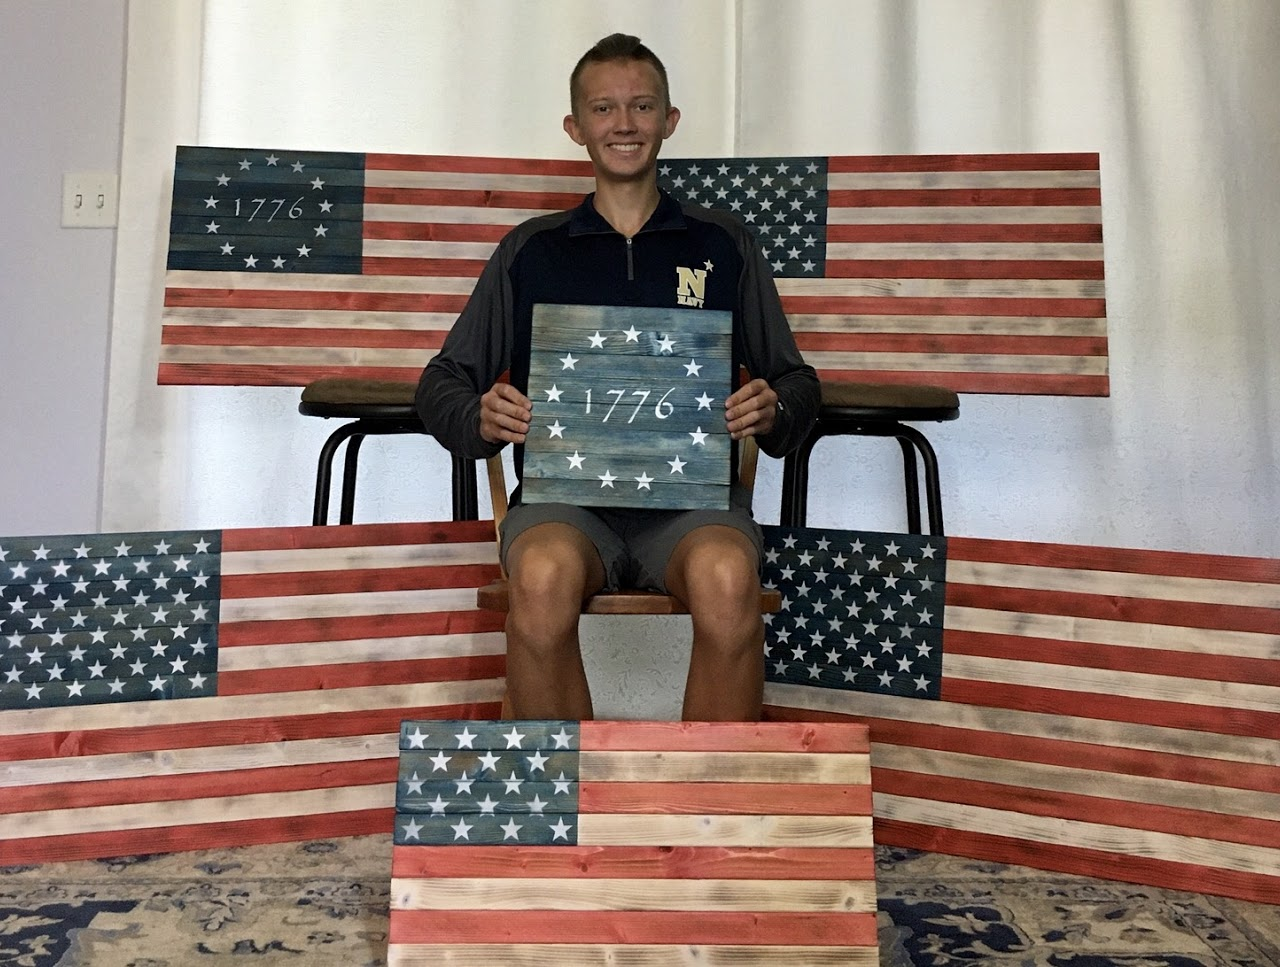 Ryan C. holding custom made wooden flag